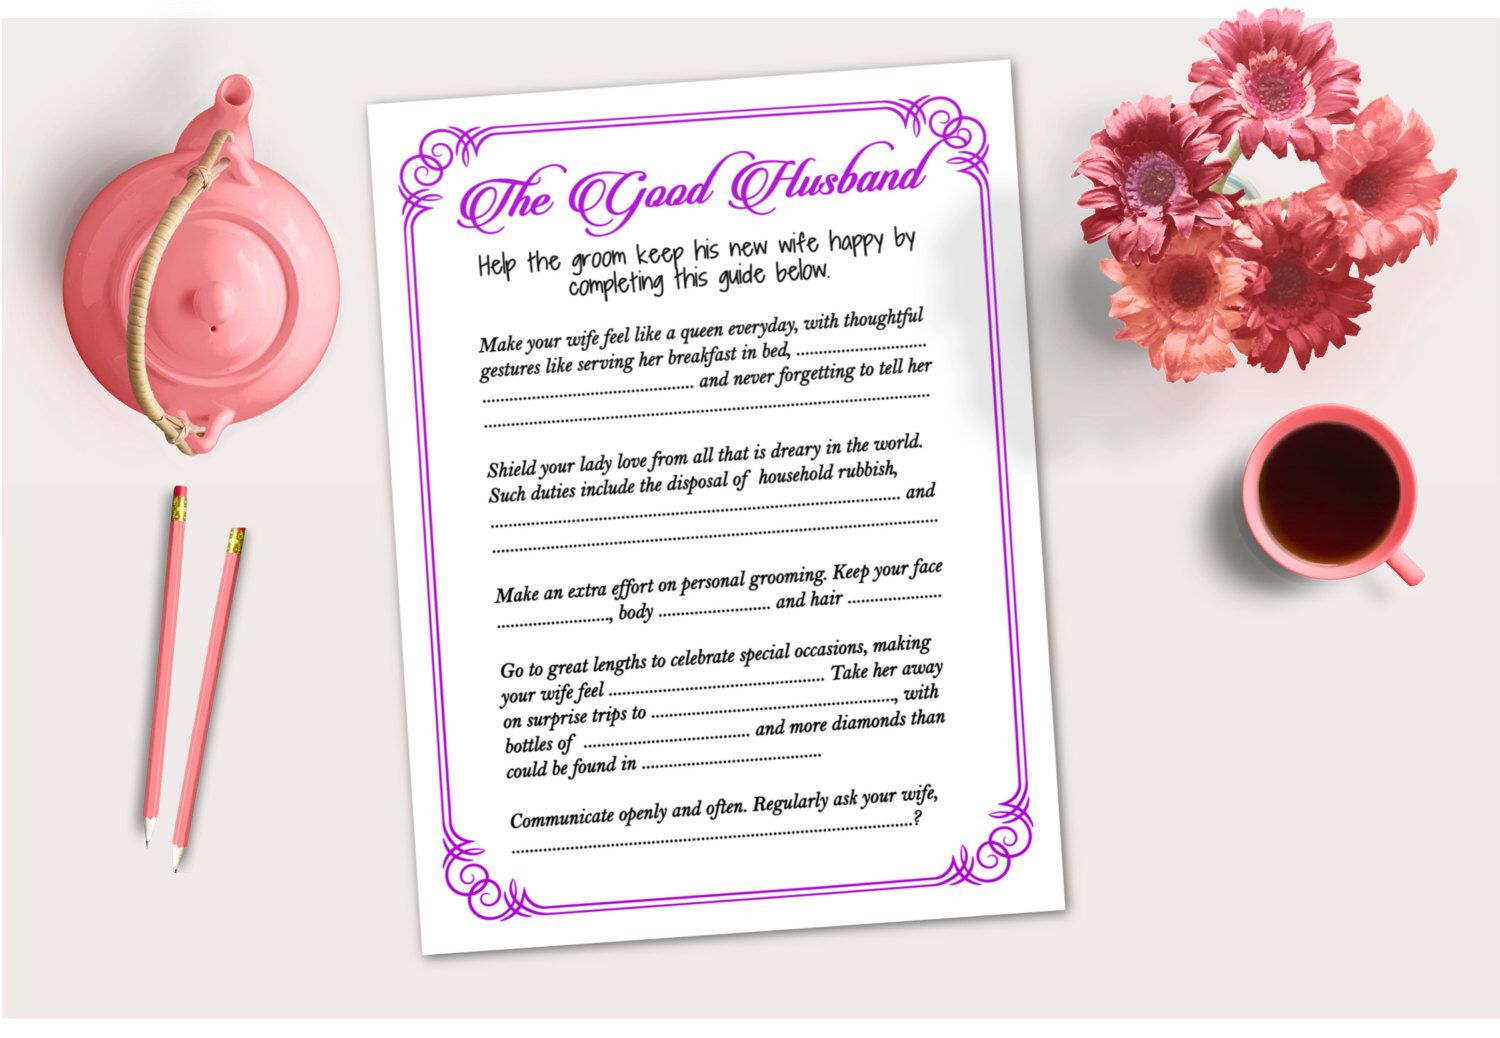 Tips for Husband Guide Hen Party Game Bridal Shower Bachelorette ...